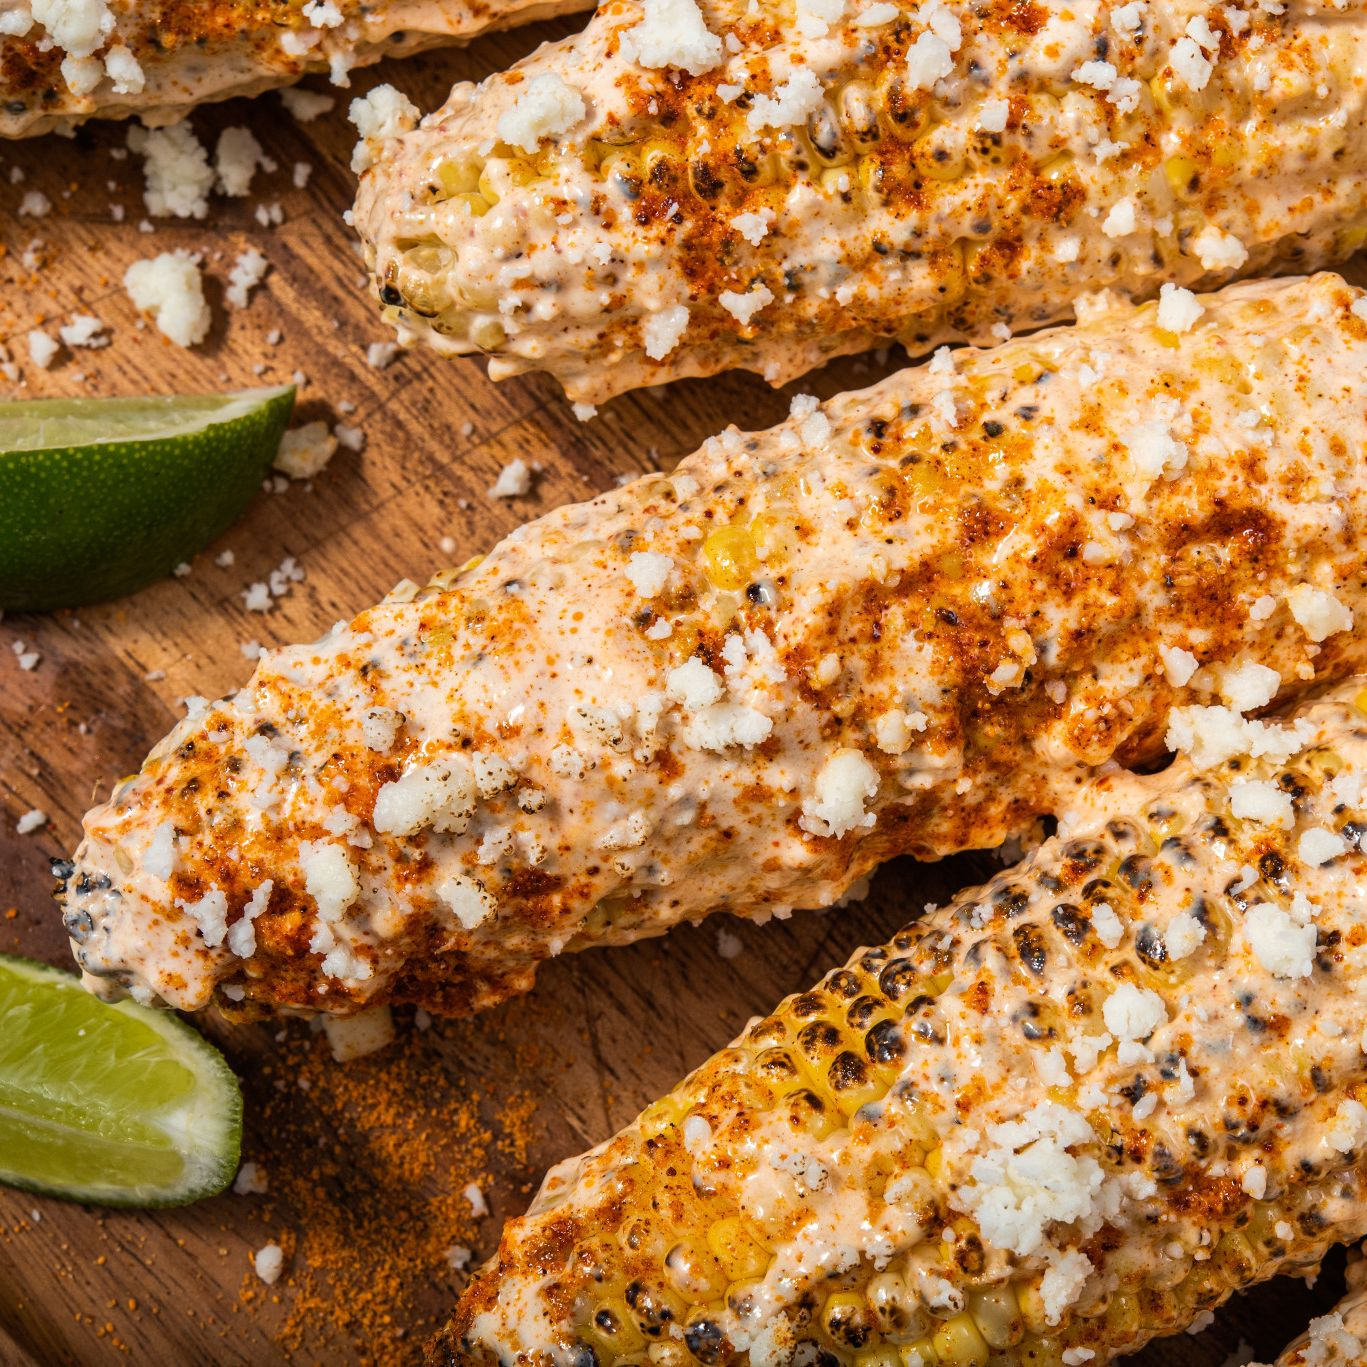 GRILLED MEXICAN-STYLE CORN ON THE COB WITH LIME MAYONNAISE